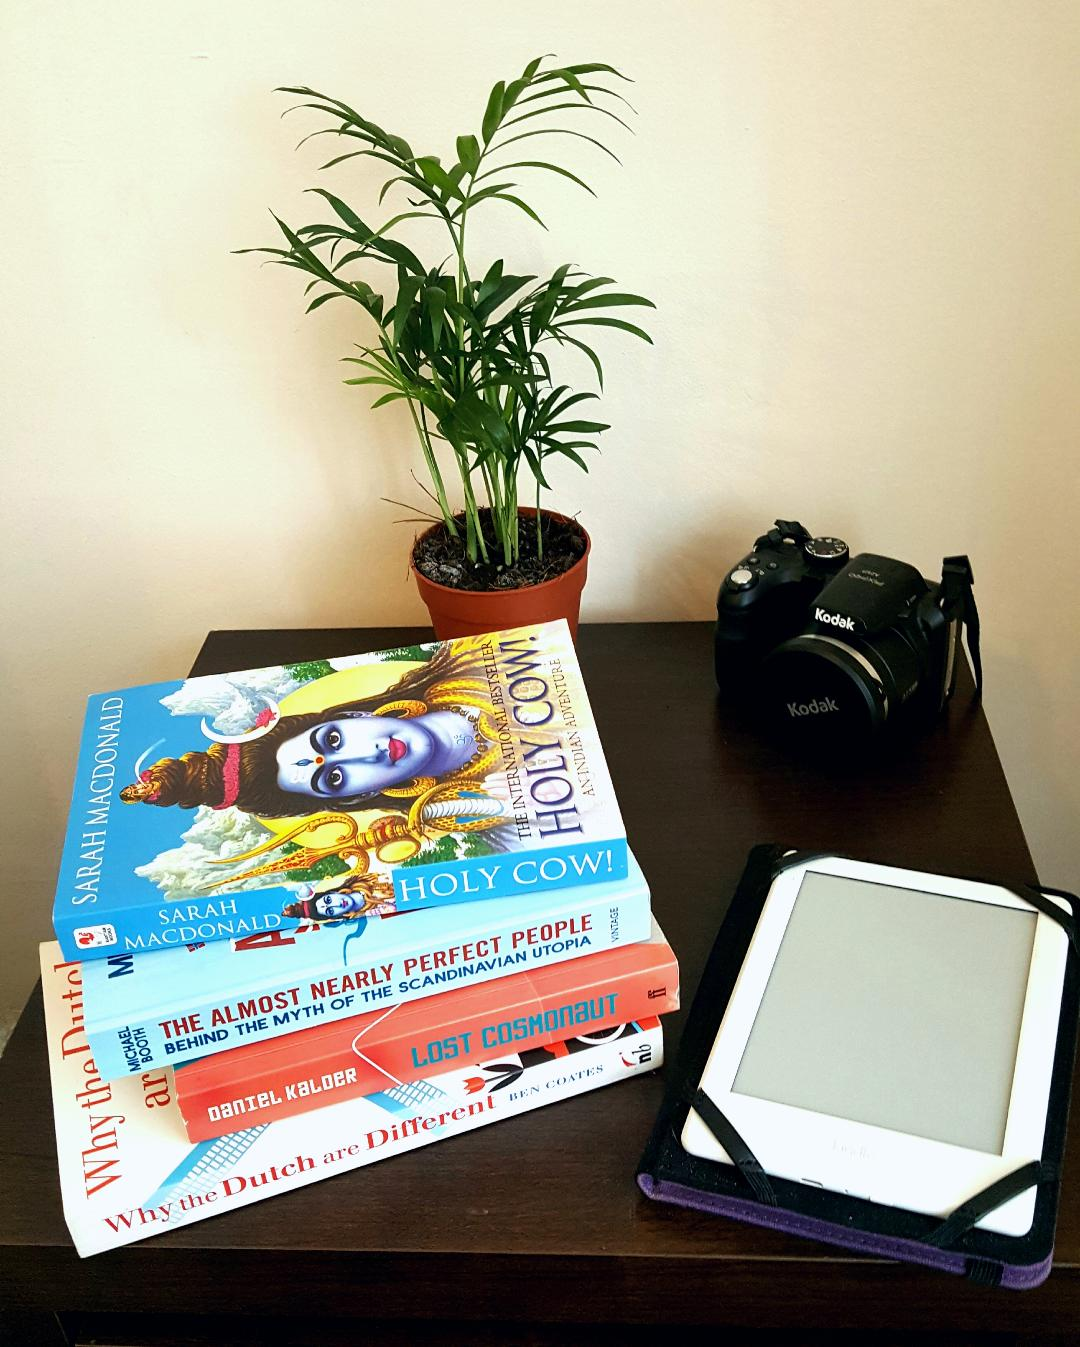 Travel from home kit including books, camera and kindle, for the travel blogger at home